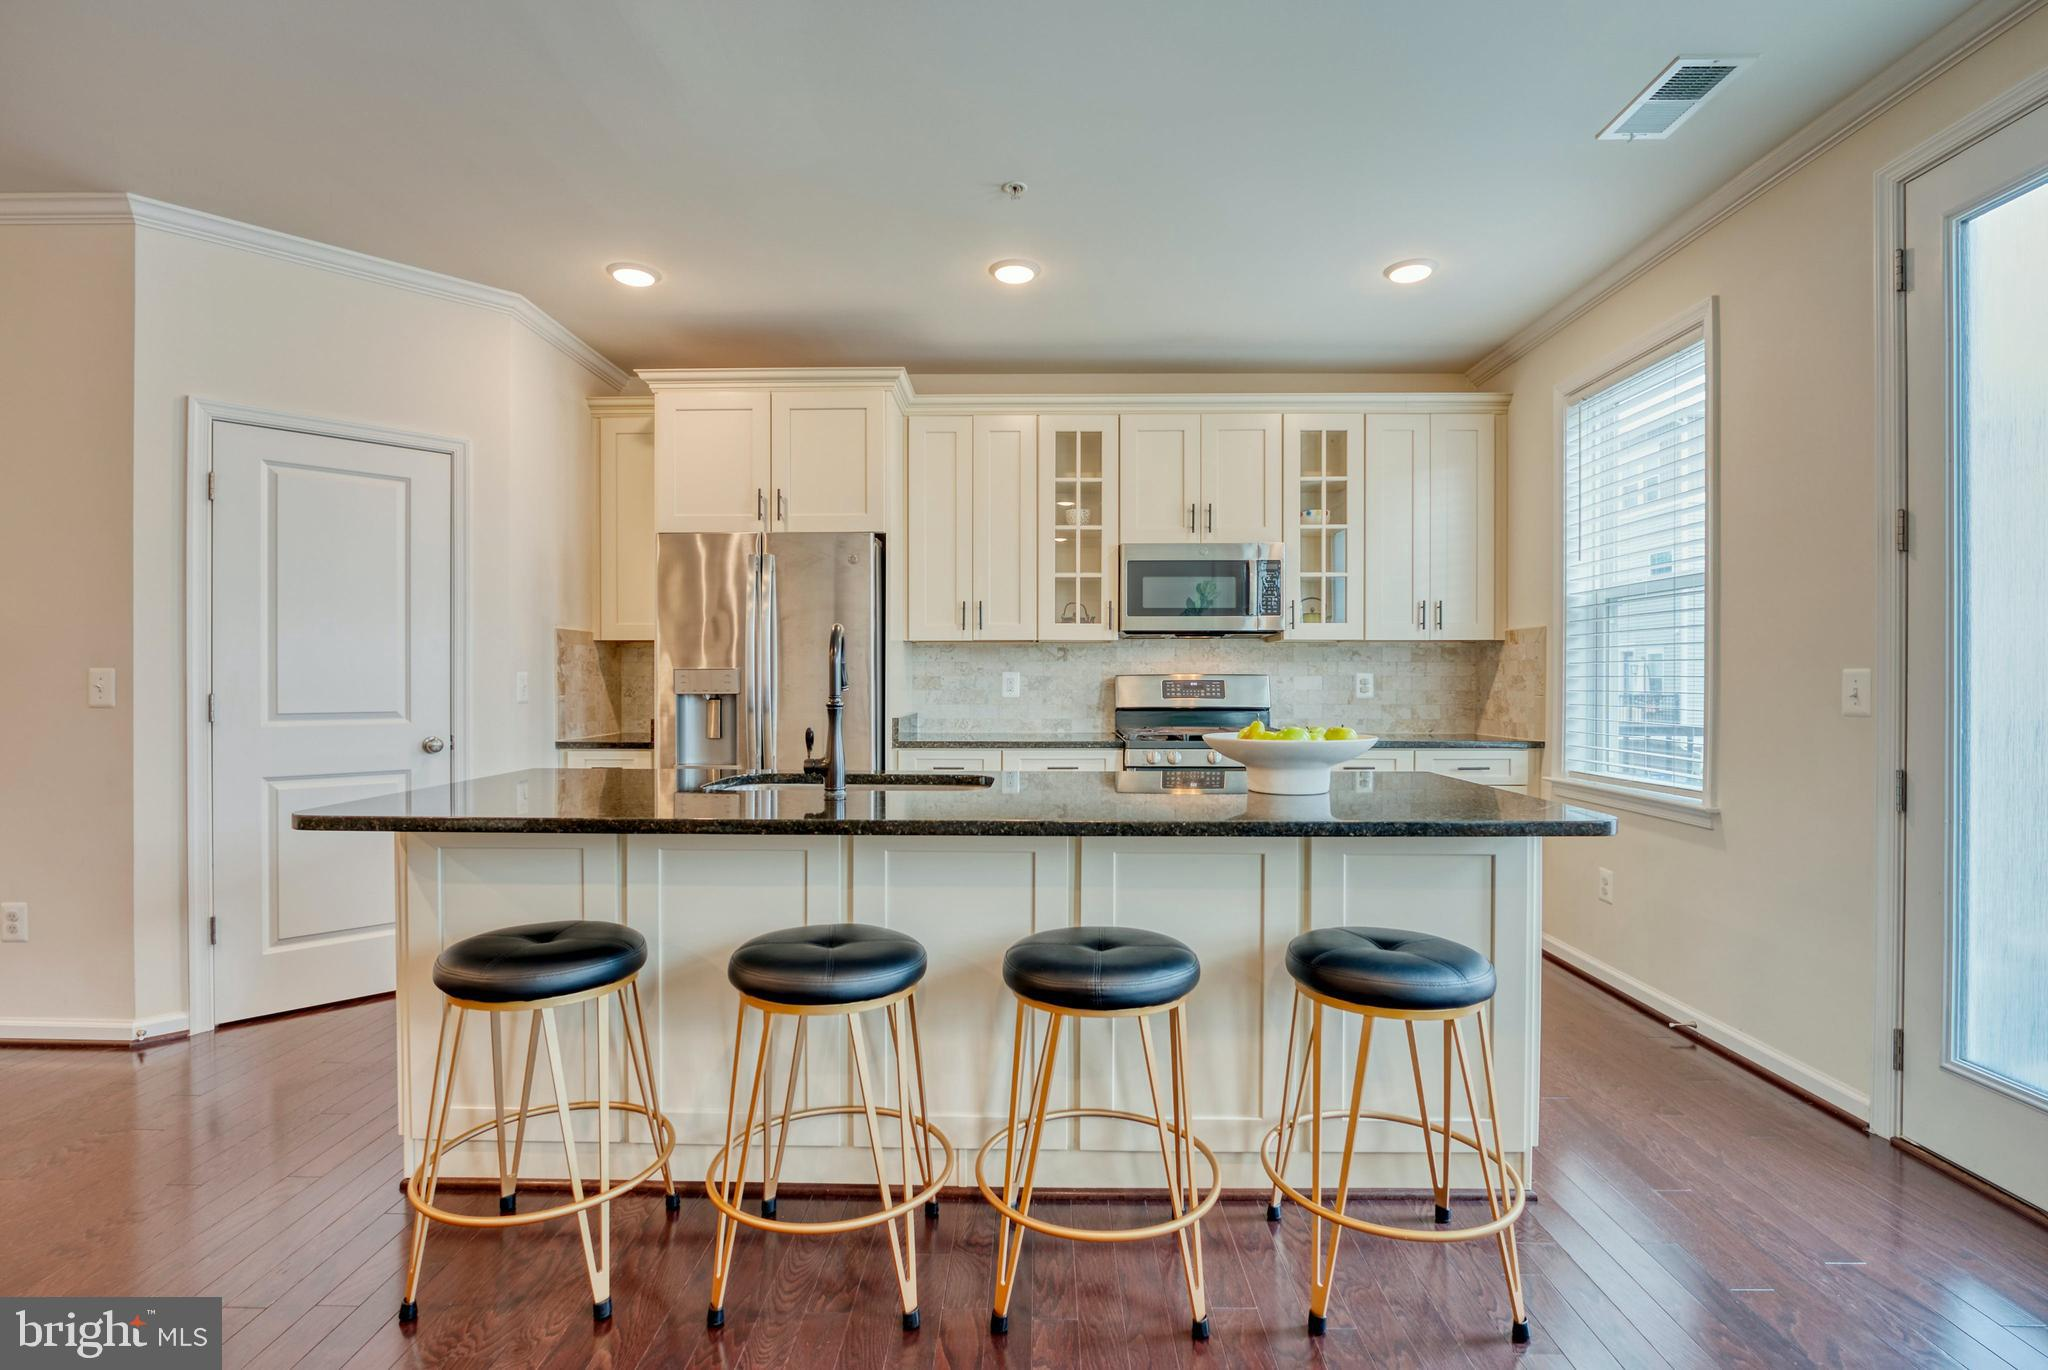 Built in 2018, this END-UNIT, modern home with an attached ONE-CAR GARAGE + driveway, is one of the